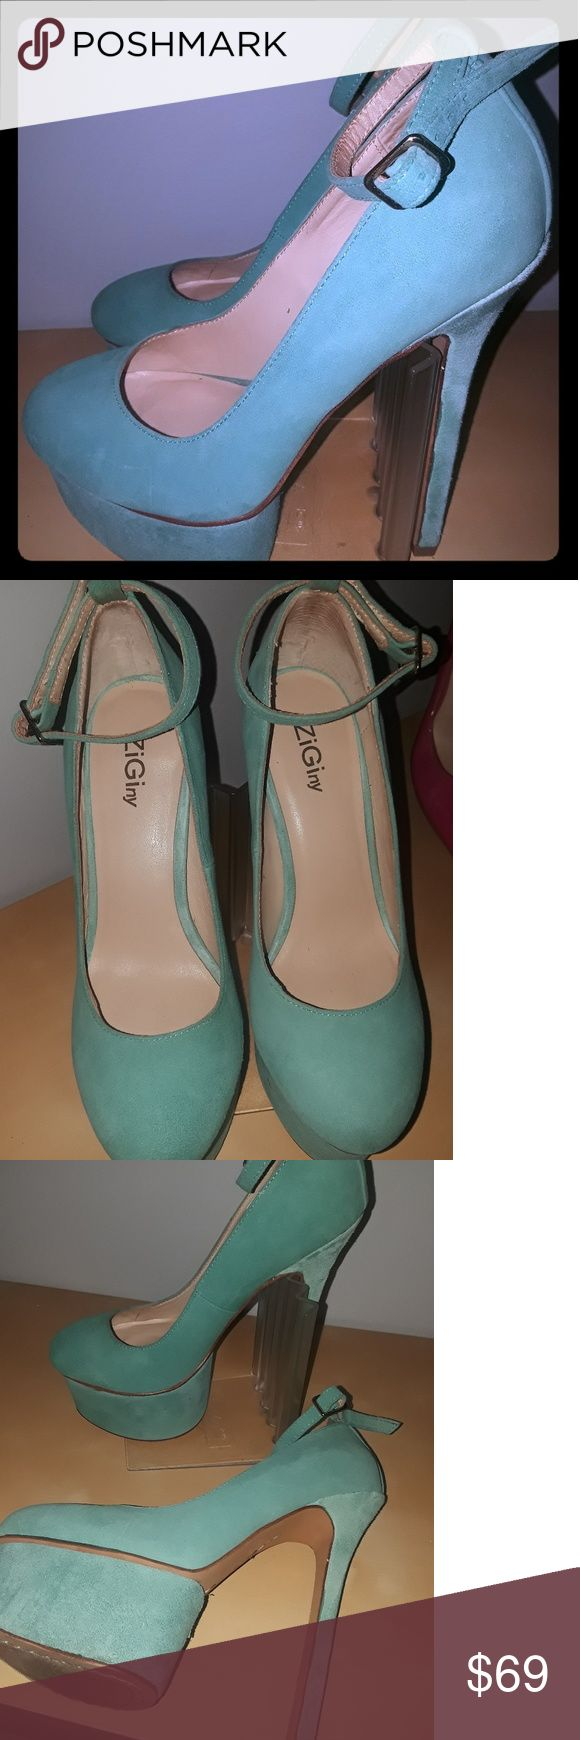 Ziginy Mint Green Heels-Size 6 O.M.G.. Can I say it?? You want some banger heels??? Here they are! I really dont want to let these Charlotte Olympia dupes but I can't do heels anymore .. These shoes are Gorgeous!!!  Genuine leather upper..  Someone please buy them, rock them and let me know how it goes!! You will get a bunch of compliments, I promise...   Heel height is 6 inches so these arent for the faint hearted..   Thanks for looking and happy shopping and please check out my closet for…